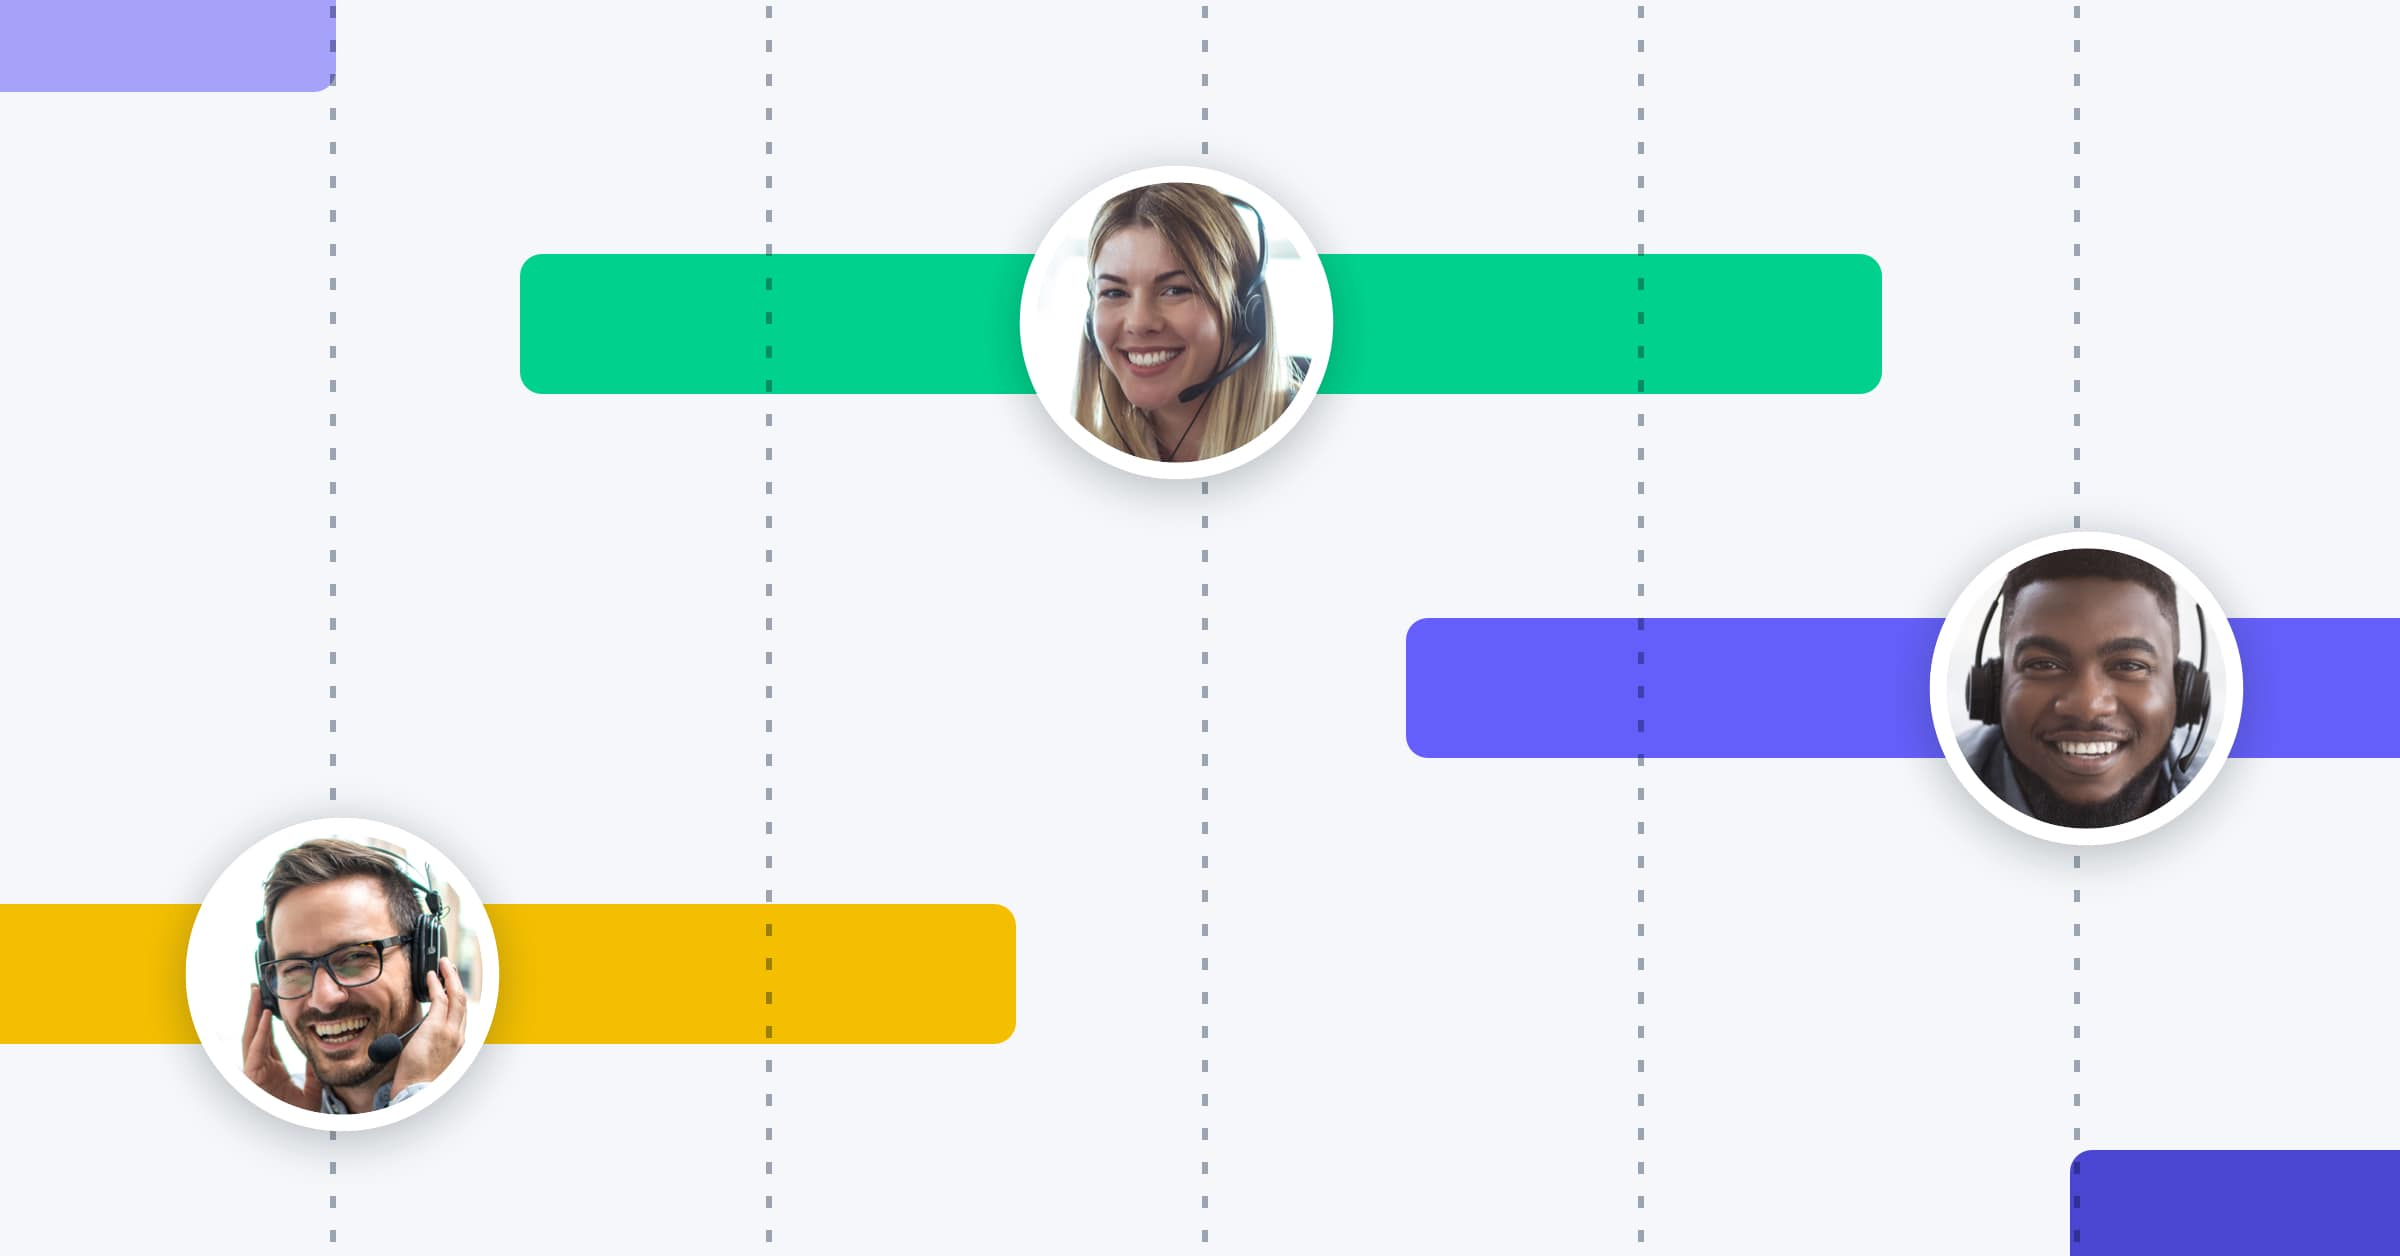 Graphic representing call center employees' work schedules on a calendar view